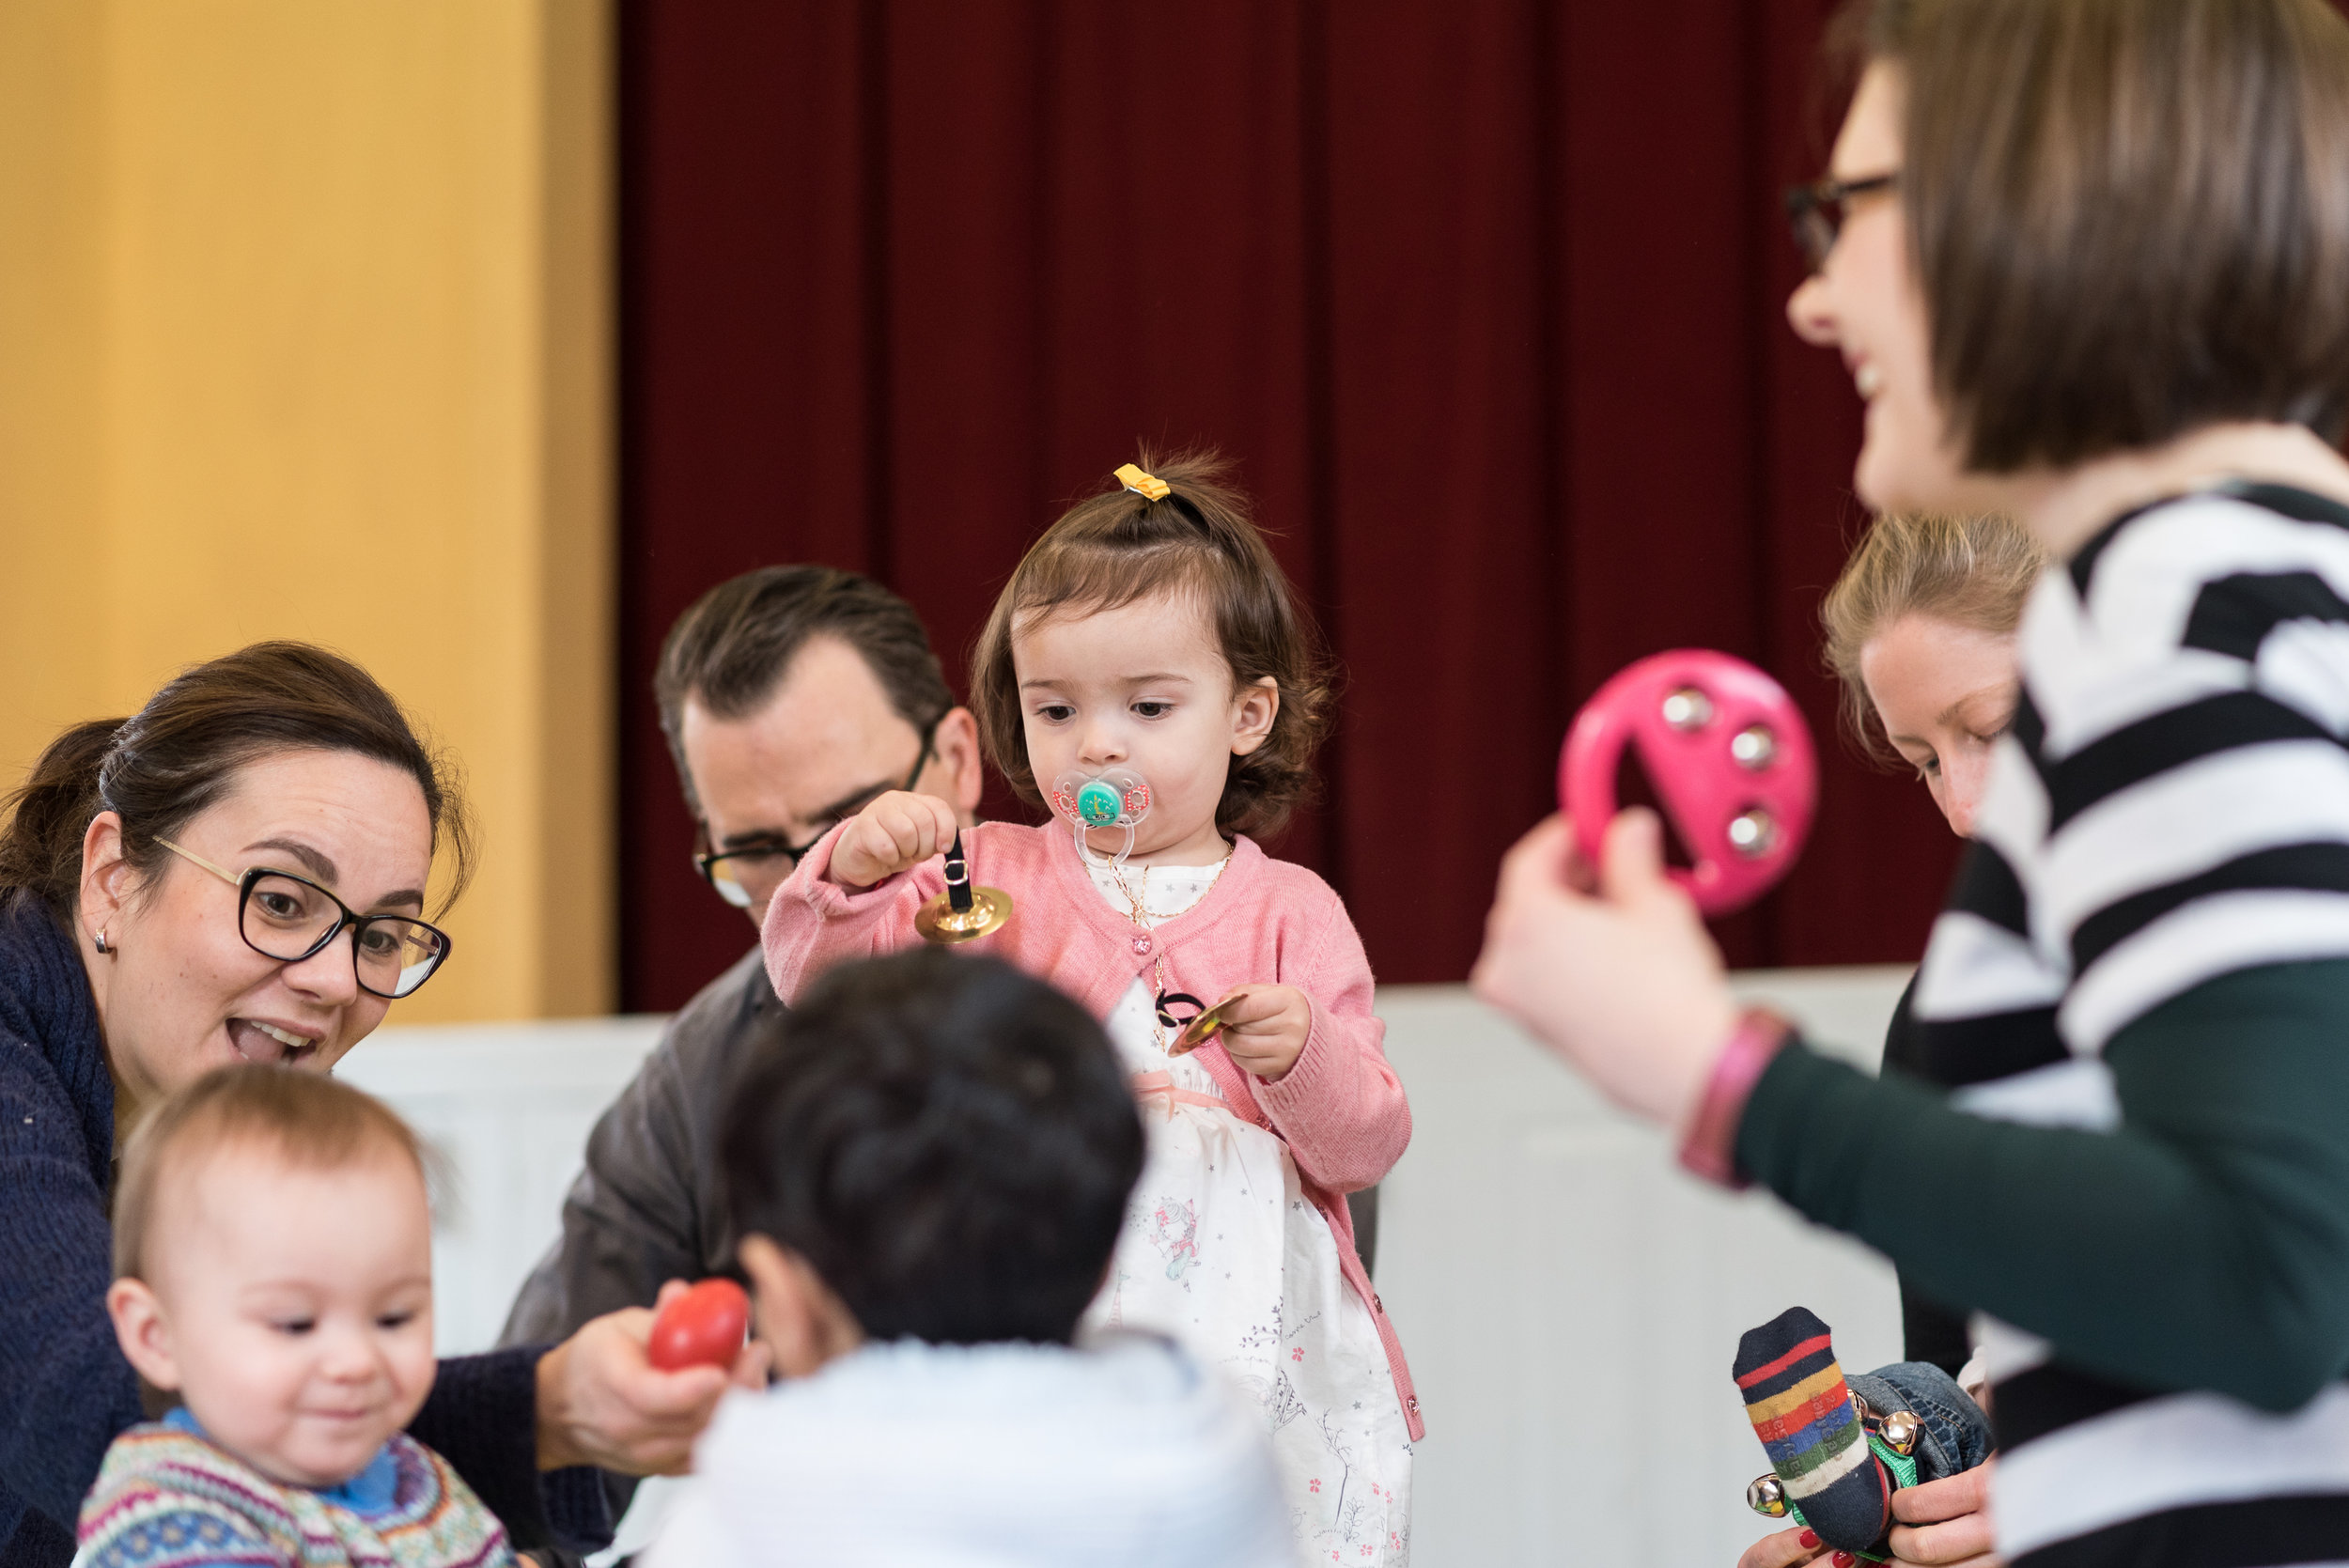 Quality classes for babies & toddlers - Discover accessible, high quality music for babies & toddlers - and for parents!